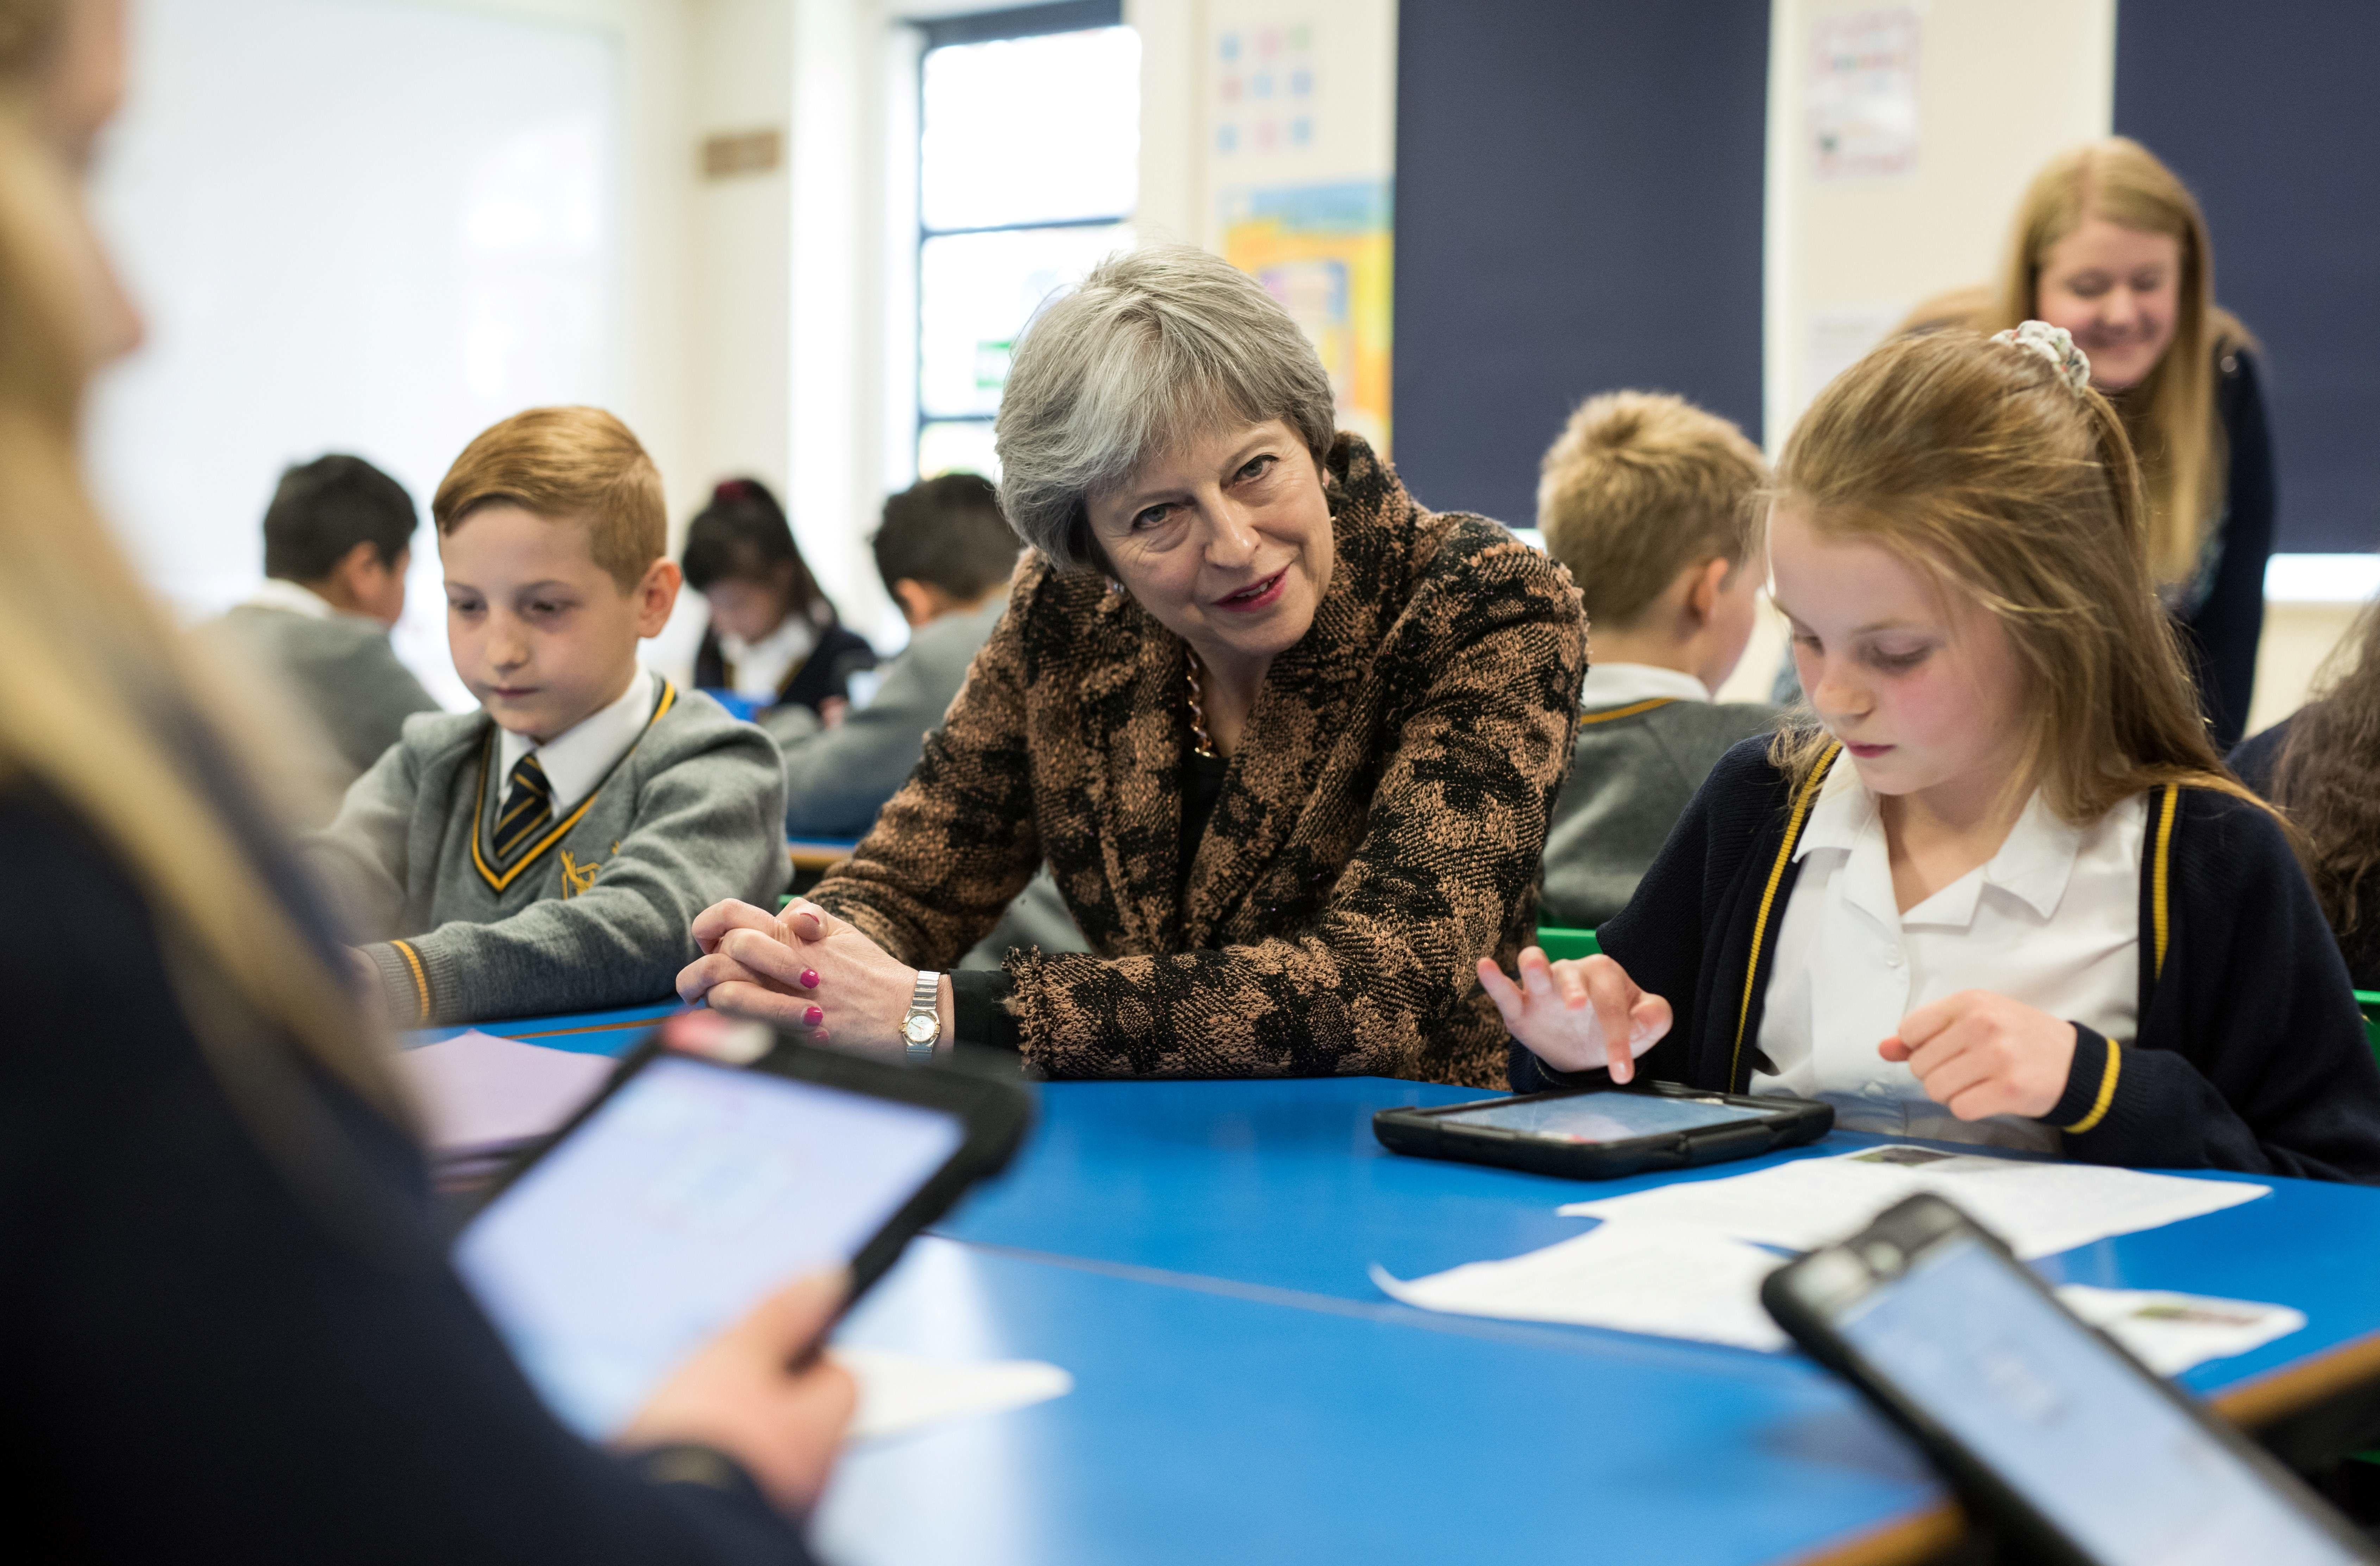 Grammar Schools Have 'No Benefit To Young People', Fresh Study